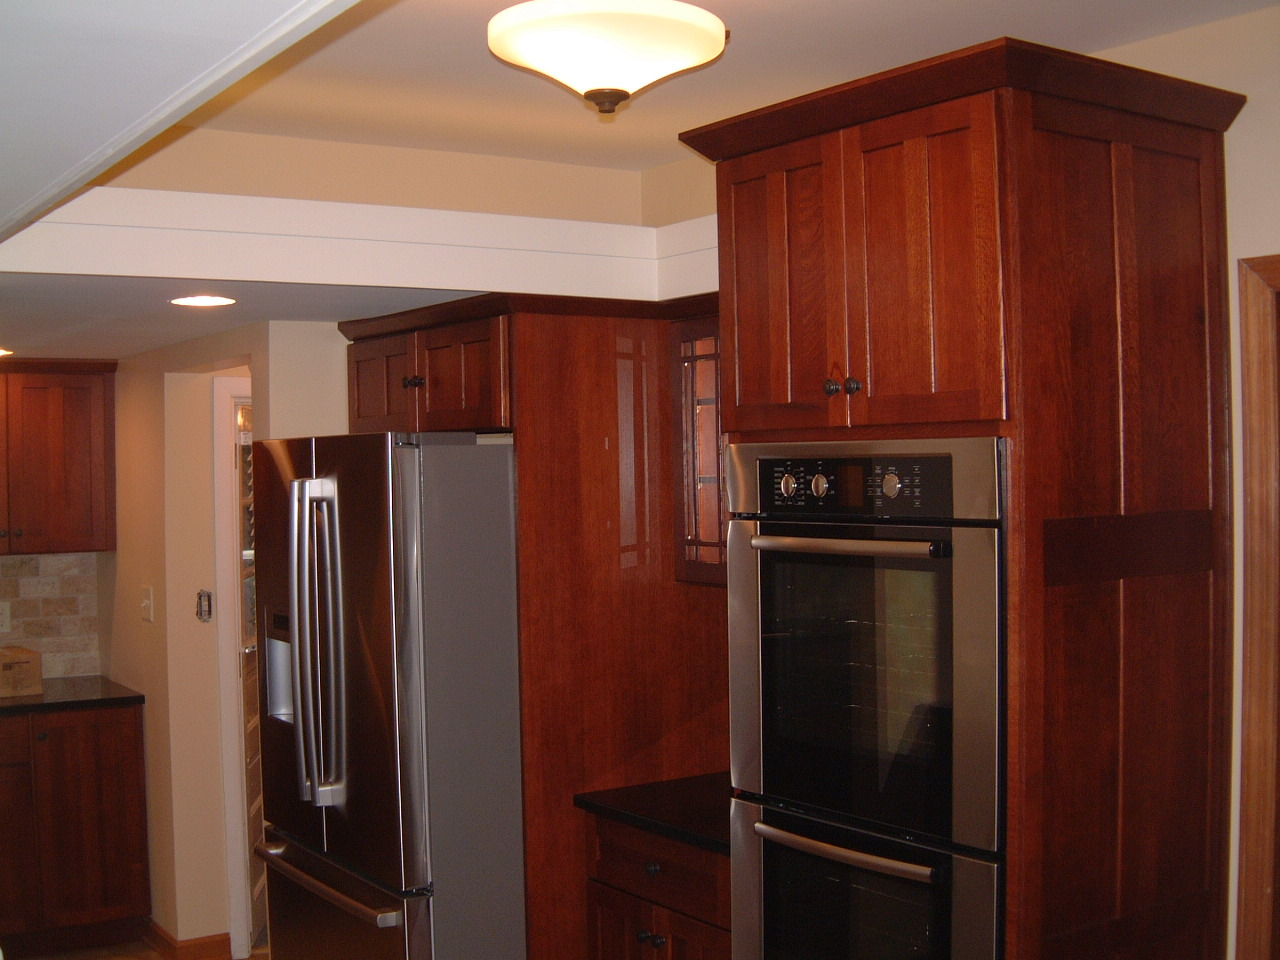 Kitchen Soffit Lighting Springfield Kitchen Project Complete Remodeling Designs Inc